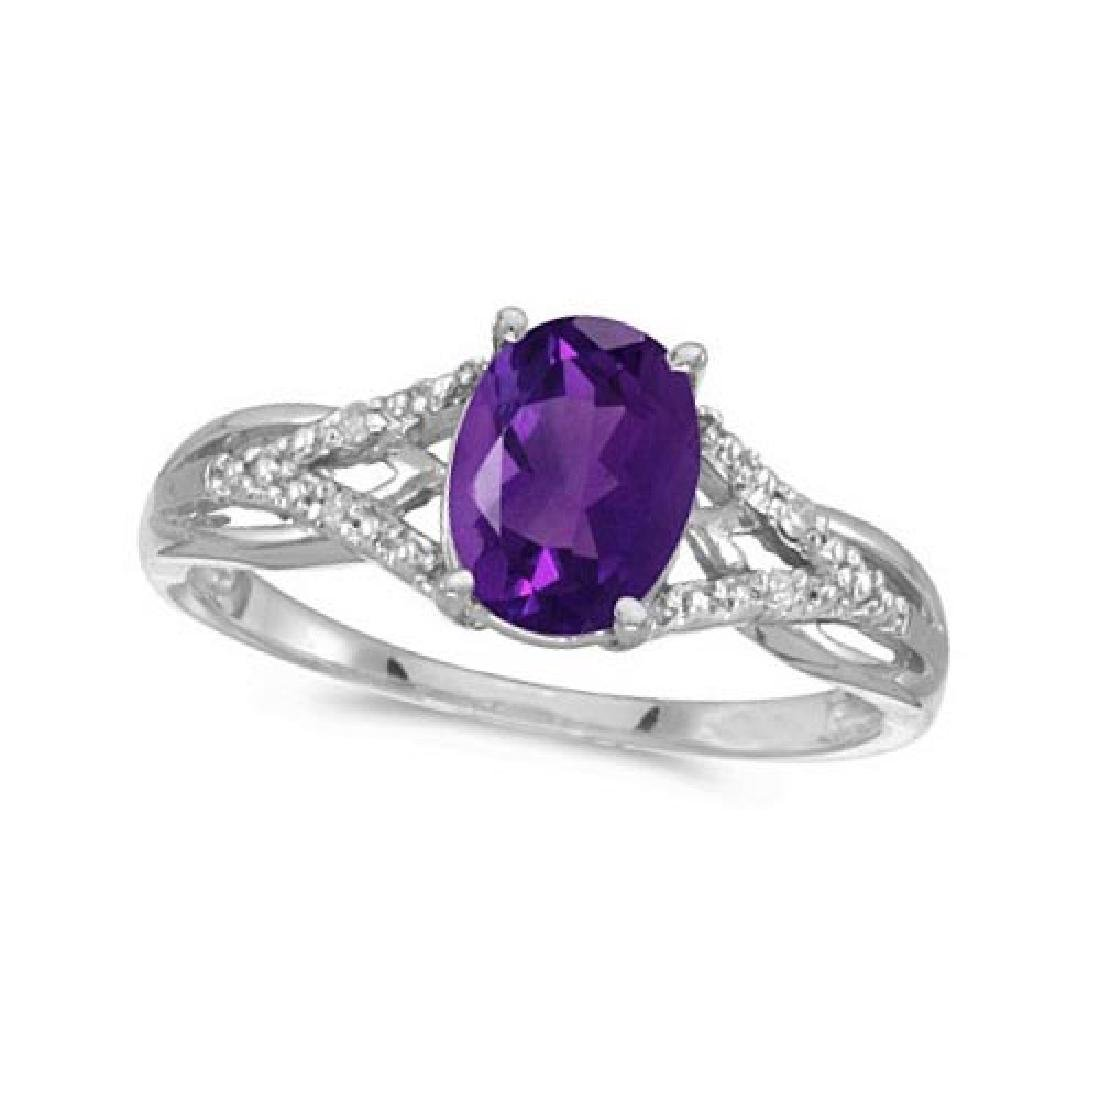 Oval Amethyst and Diamond Cocktail Ring 14K White Gold